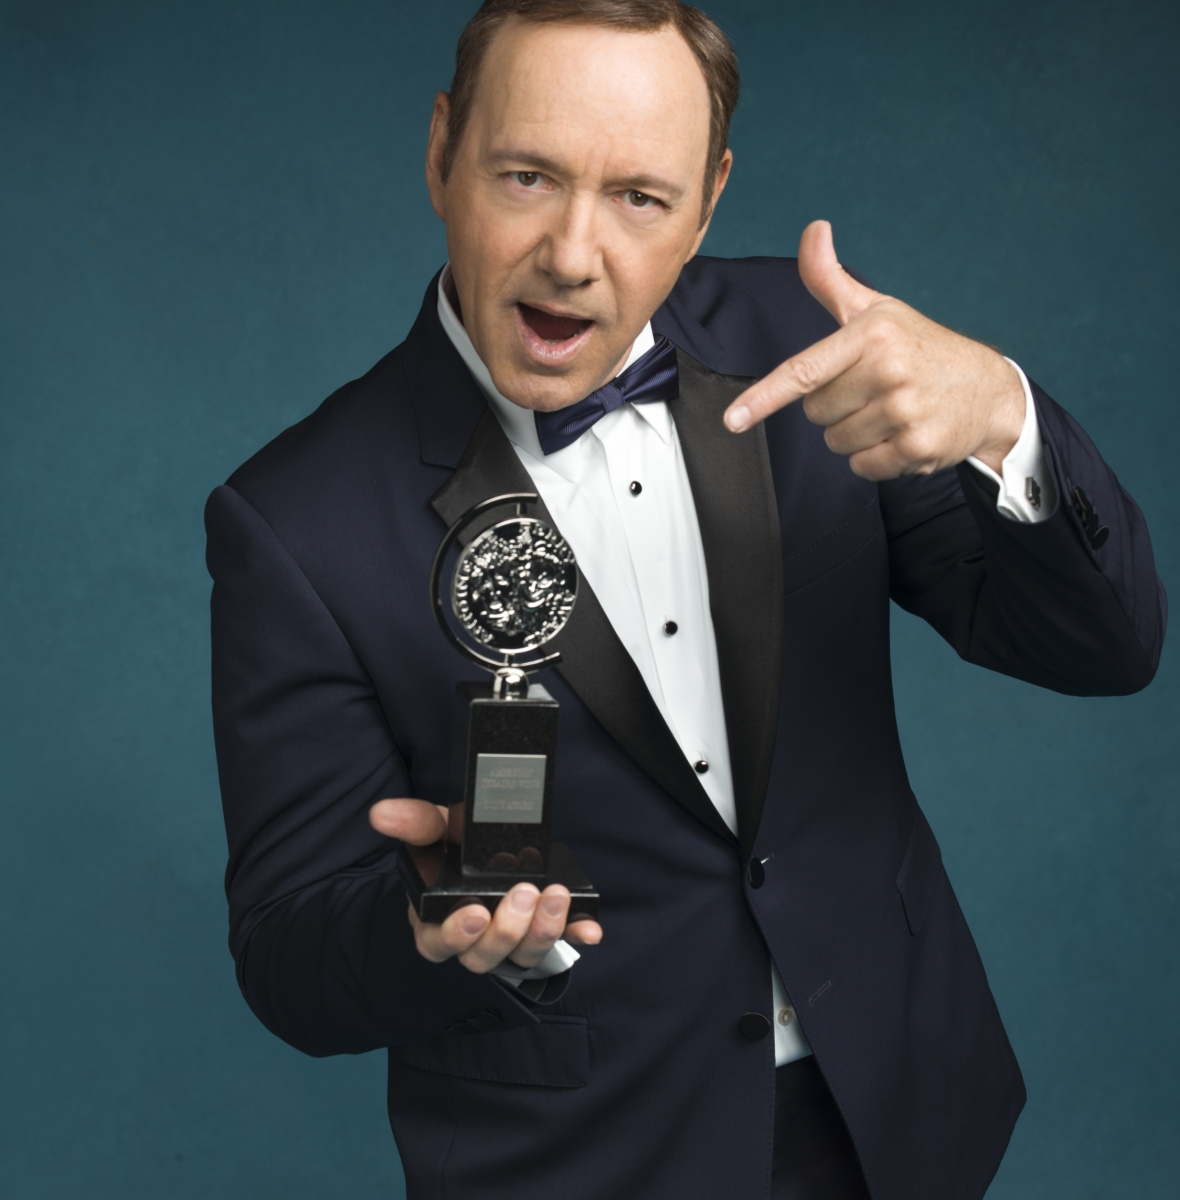 kevin spacey tony award getty images